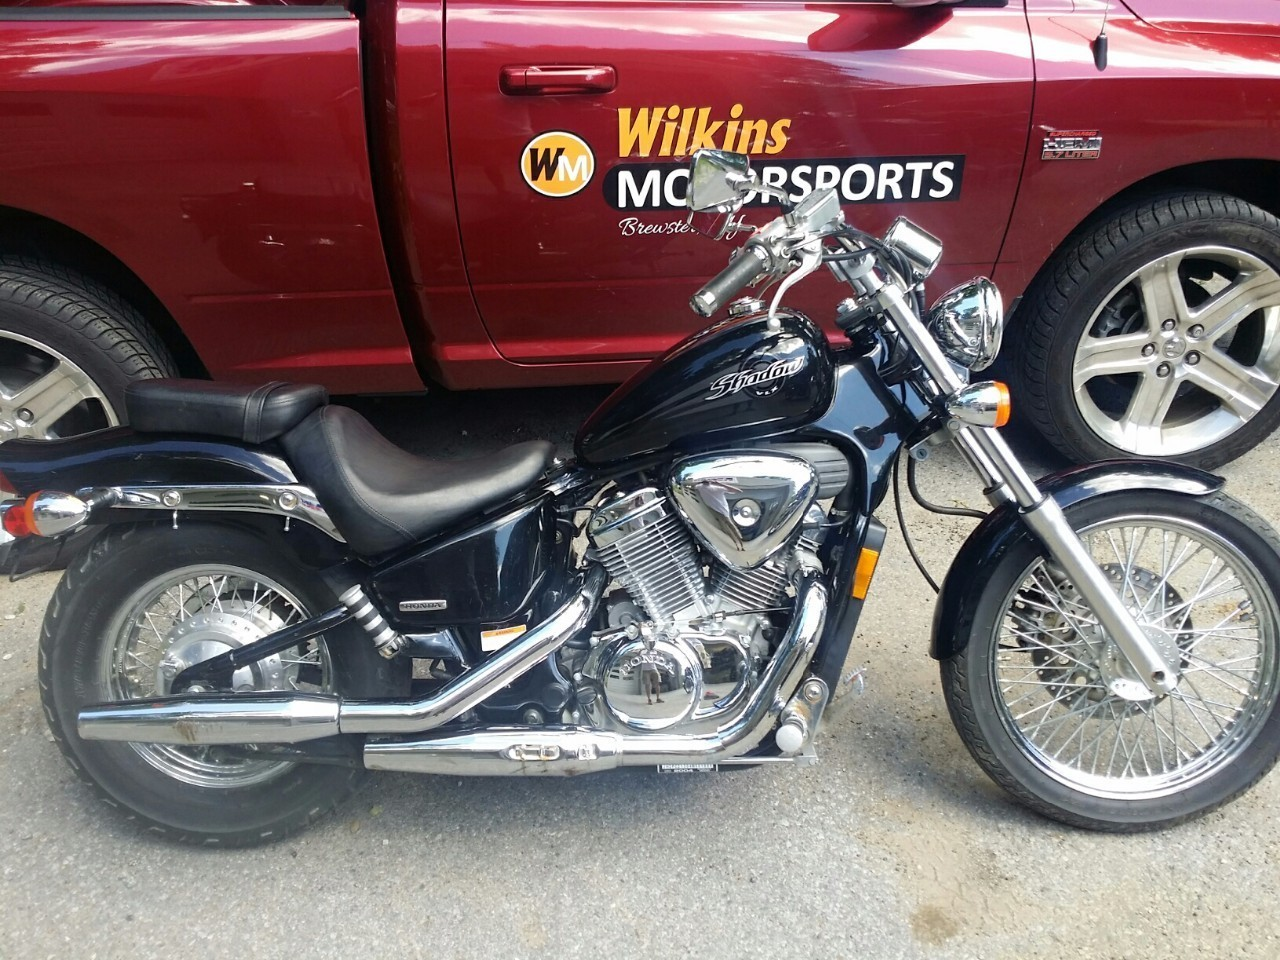 2004 Honda SHADOW VLX 600 DELUXE VLX600, motorcycle listing